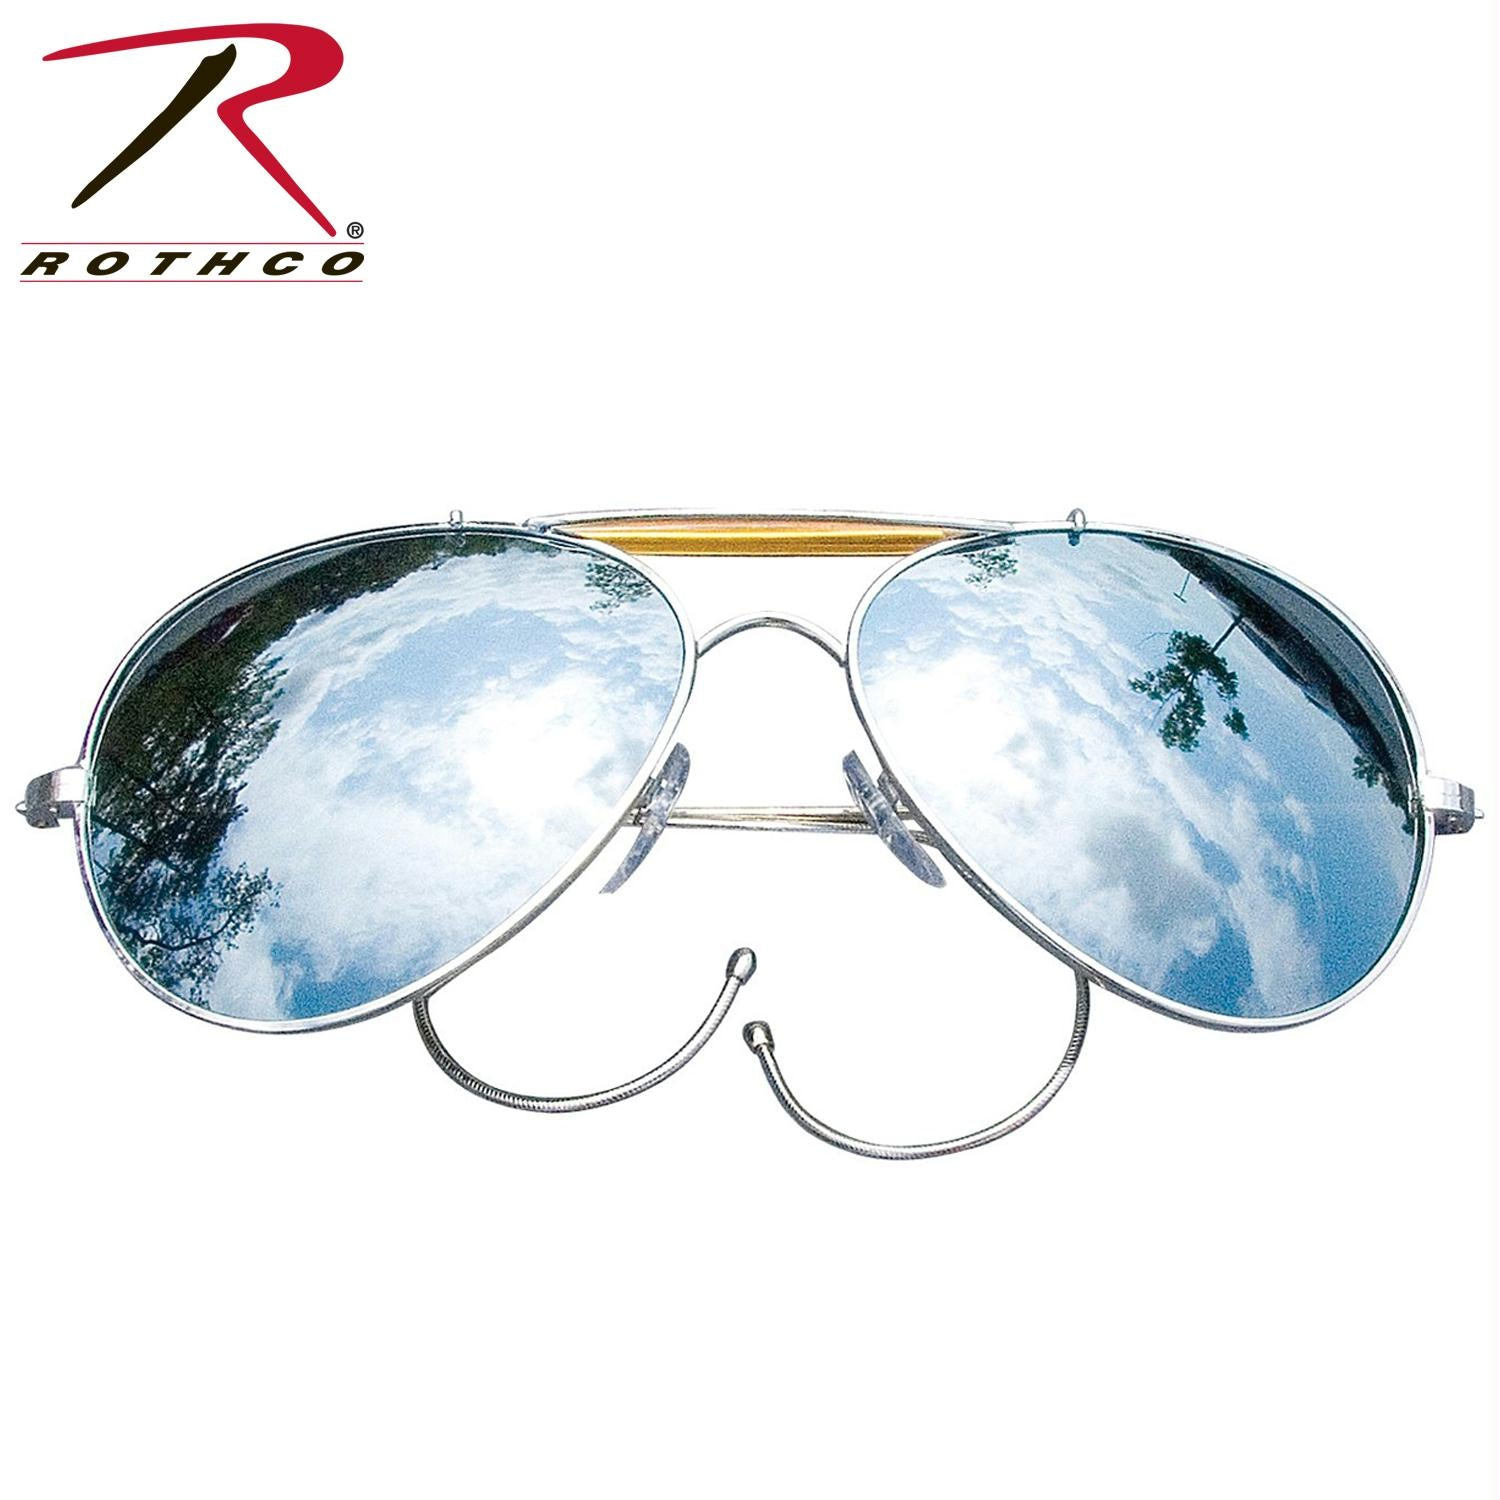 Rothco Aviator Air Force Style Sunglasses - Mirror / Military Printed Case & Box